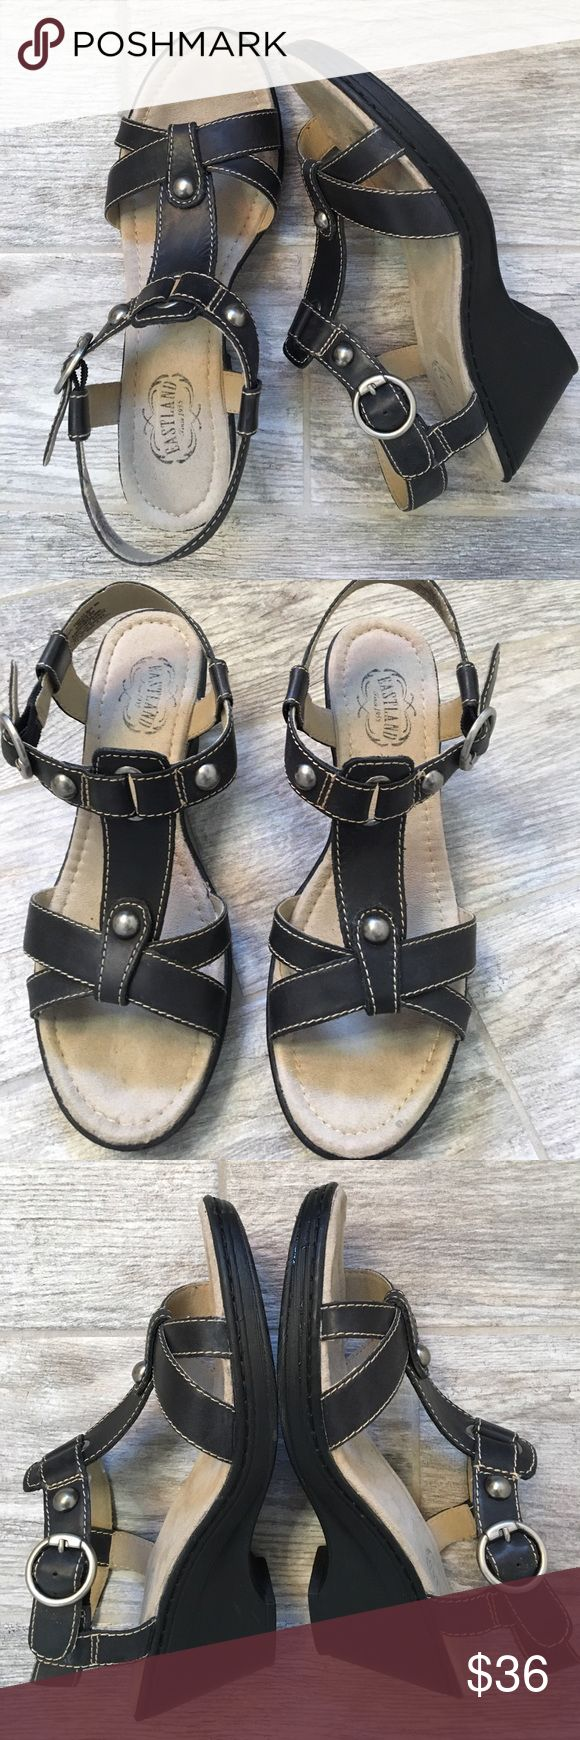 Eastland Wedge Sandals. 8M T-strap sandal, adjustable back strap with silver tone buckle and hardware, very comfortable contoured footbed.  2 1/2 inch graduated wedge.   Hard to find, sold out.  Leather upper. Eastland Shoes Sandals